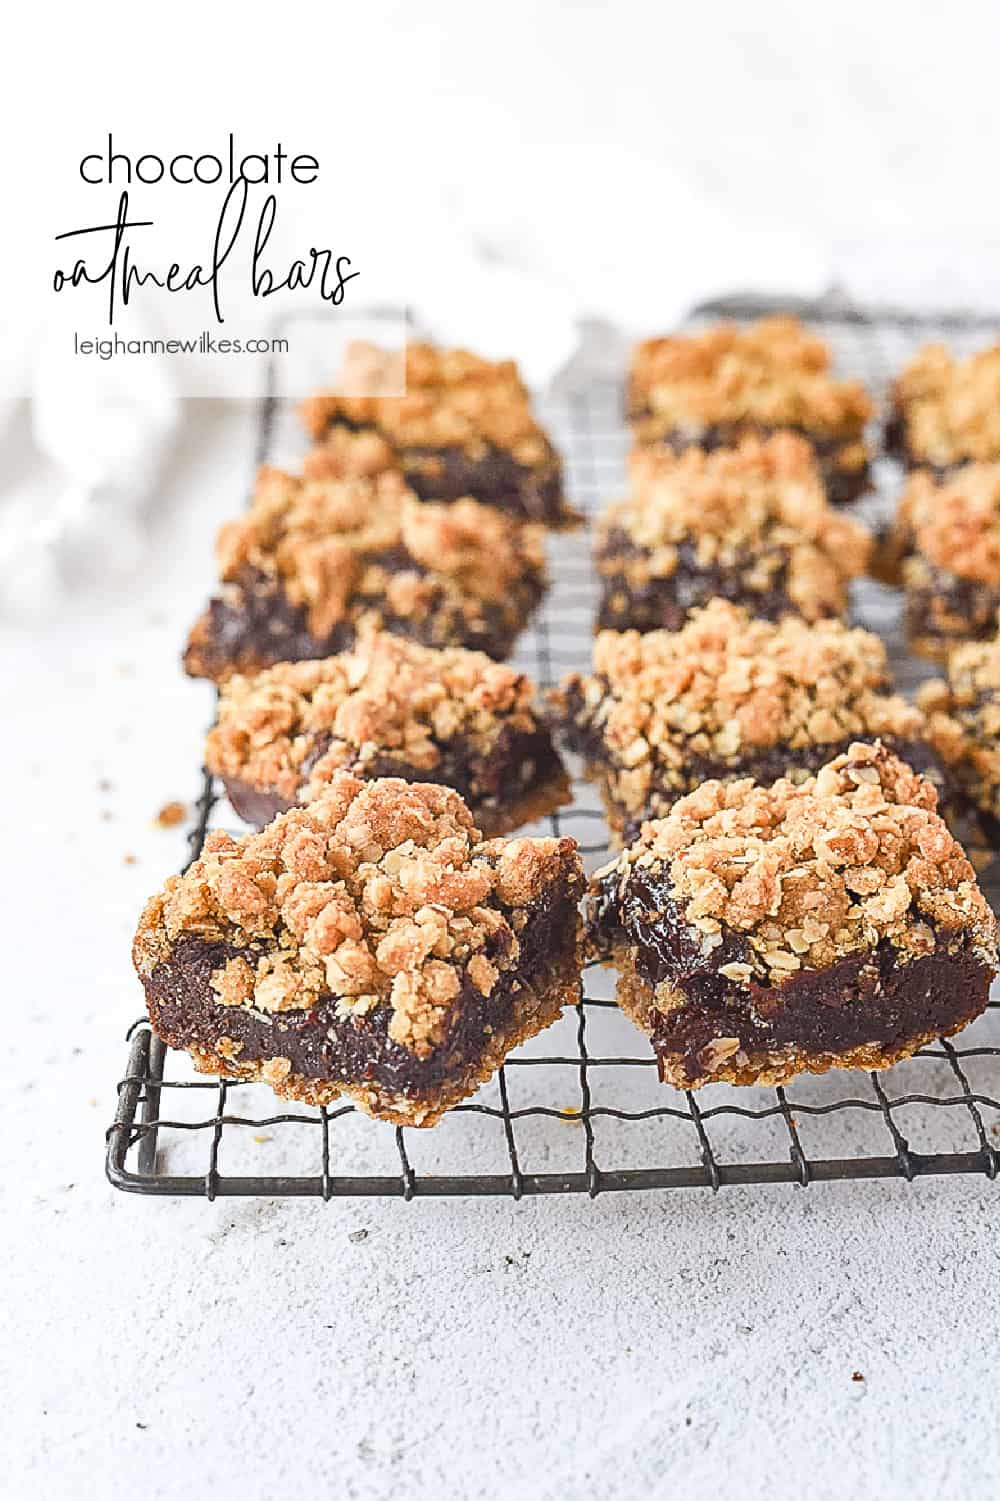 chocolate oatmeal bars on a cooling rack